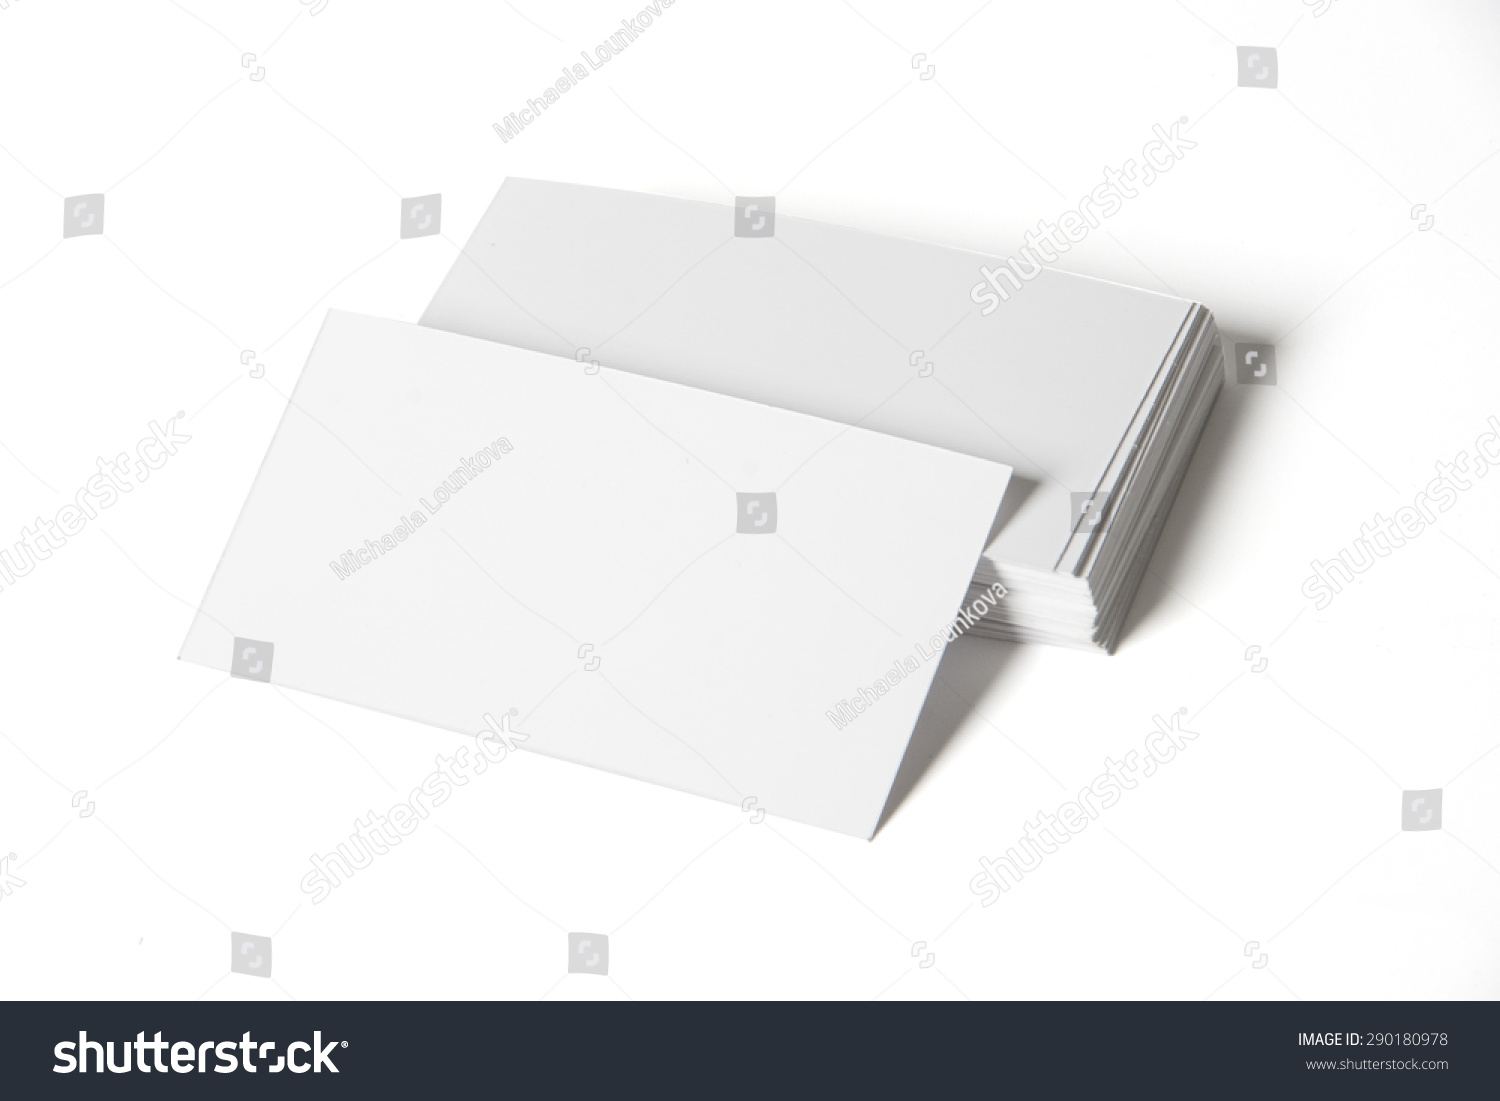 White Pile Business Cards On White Stock Photo 290180978 - Shutterstock